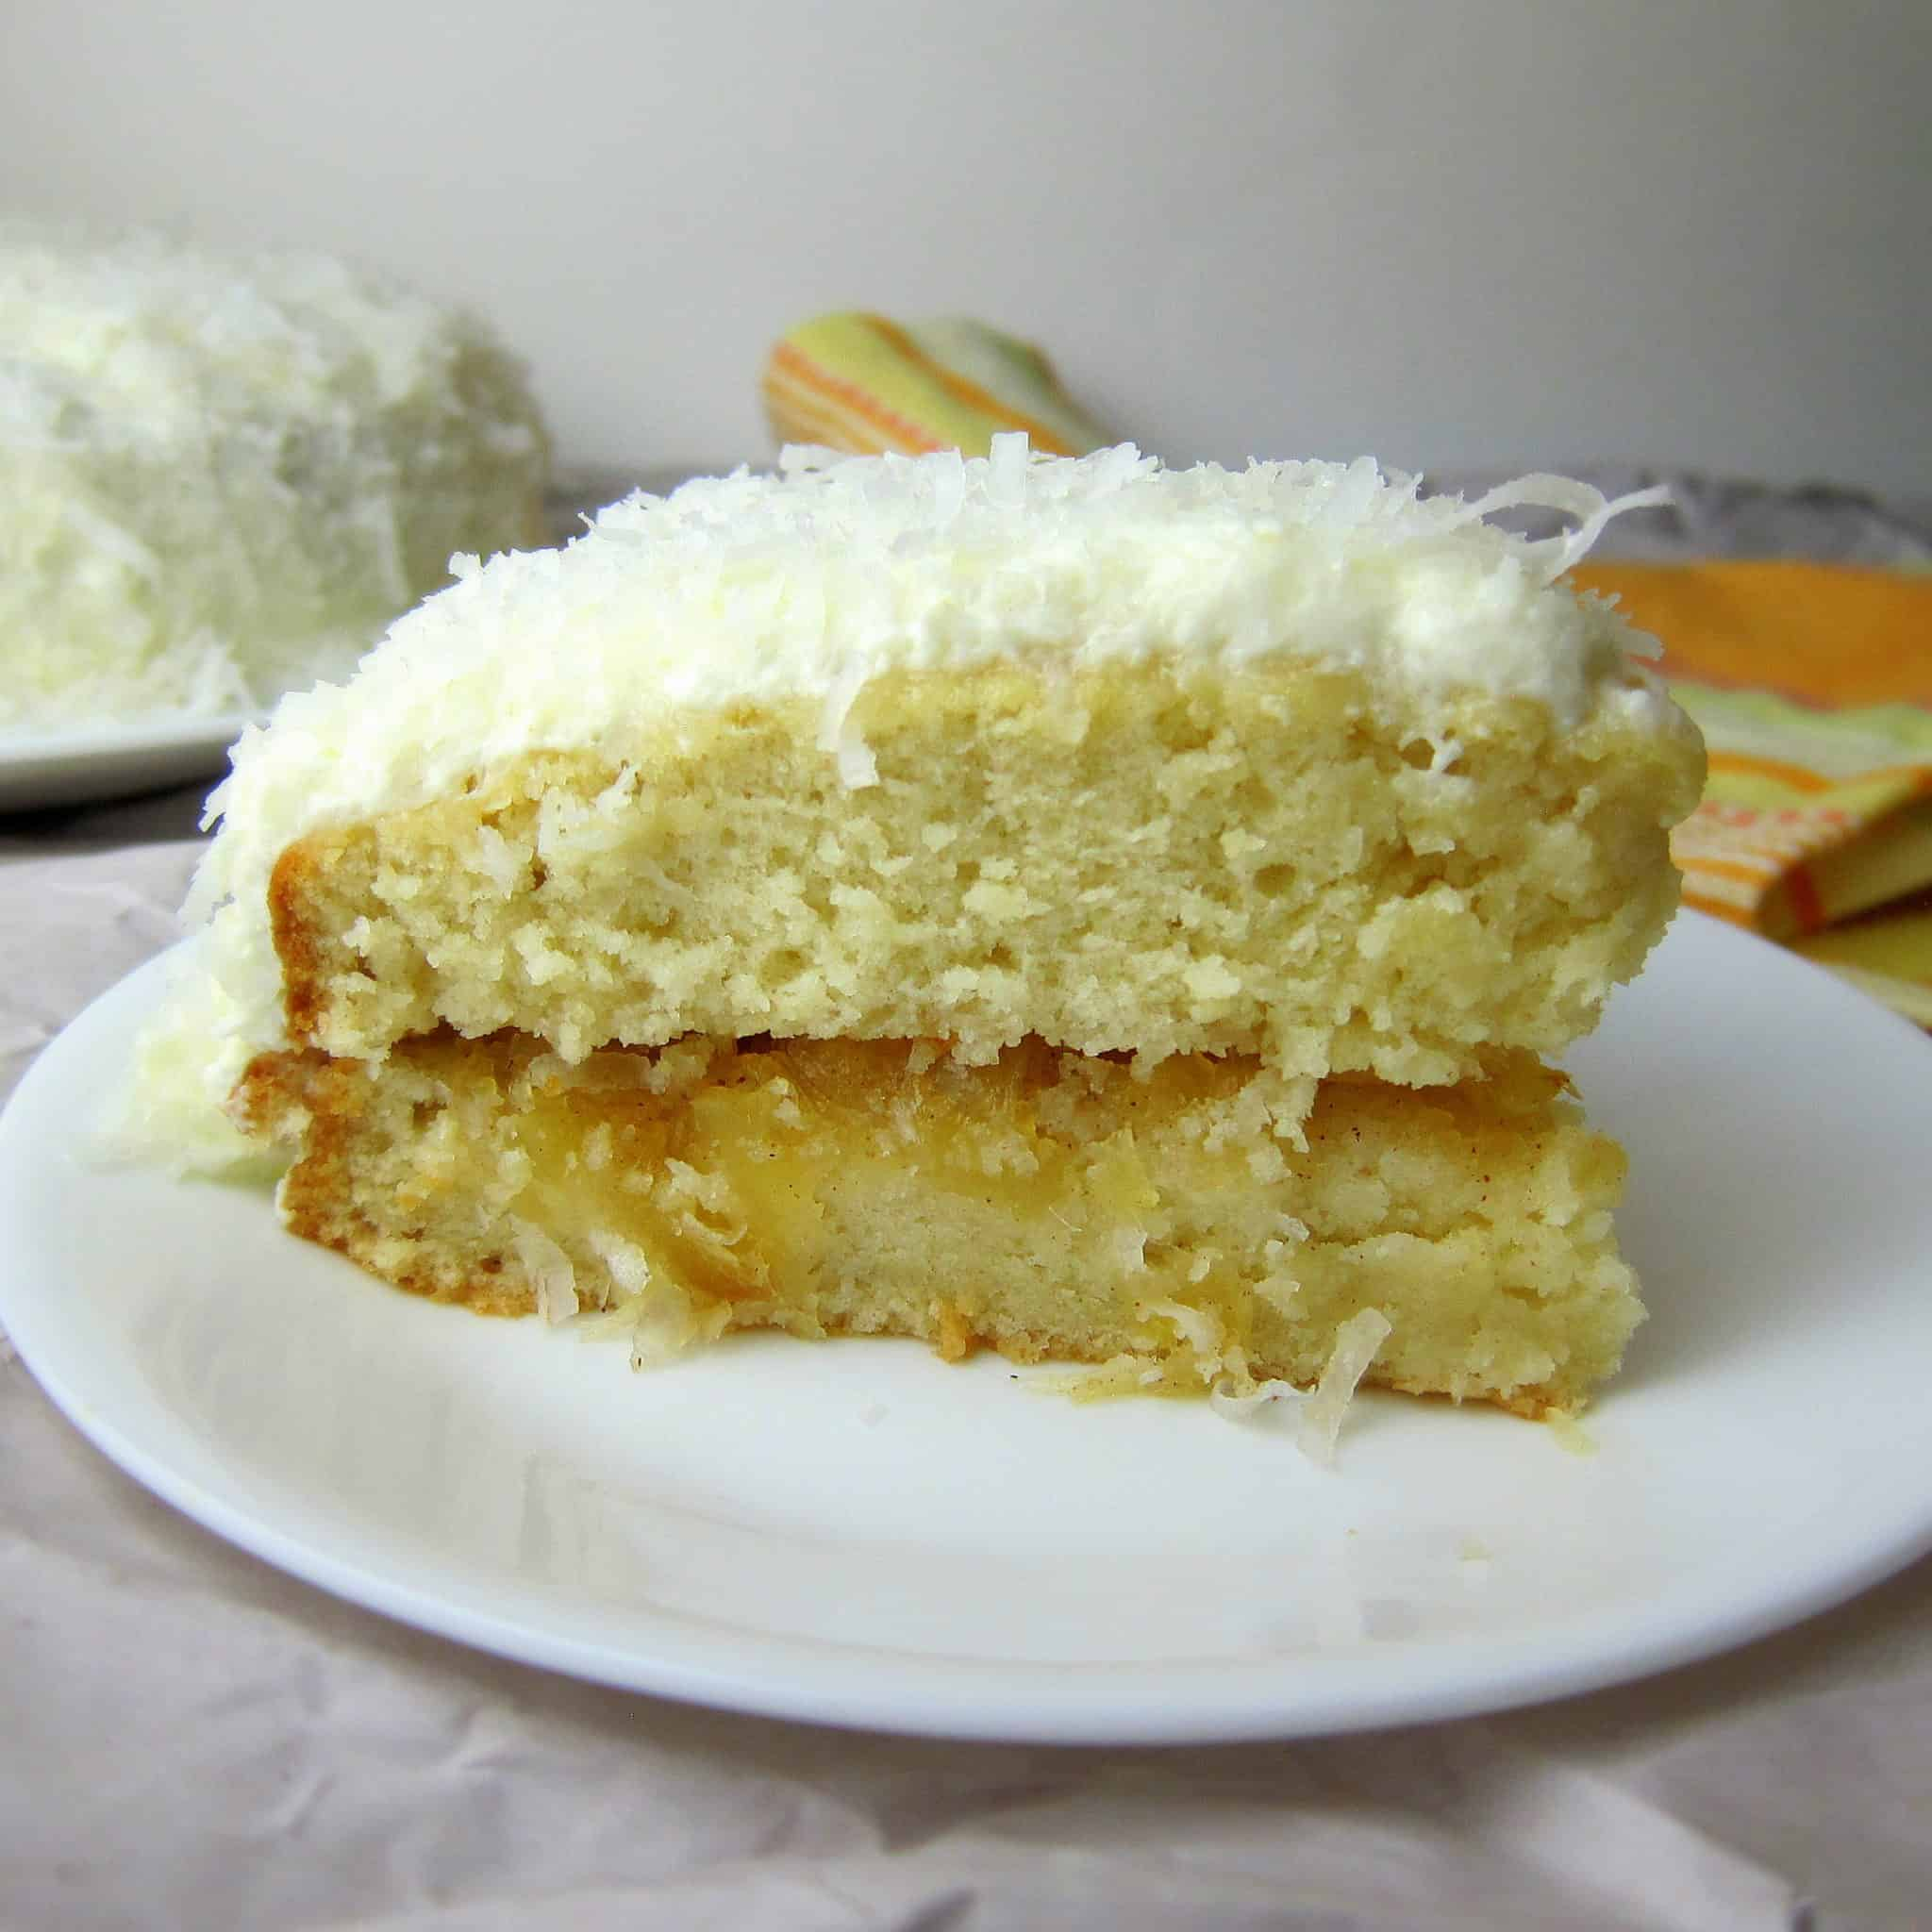 Pineapple Coconut Cake: Coconut Cake With Pineapple Jam Filling